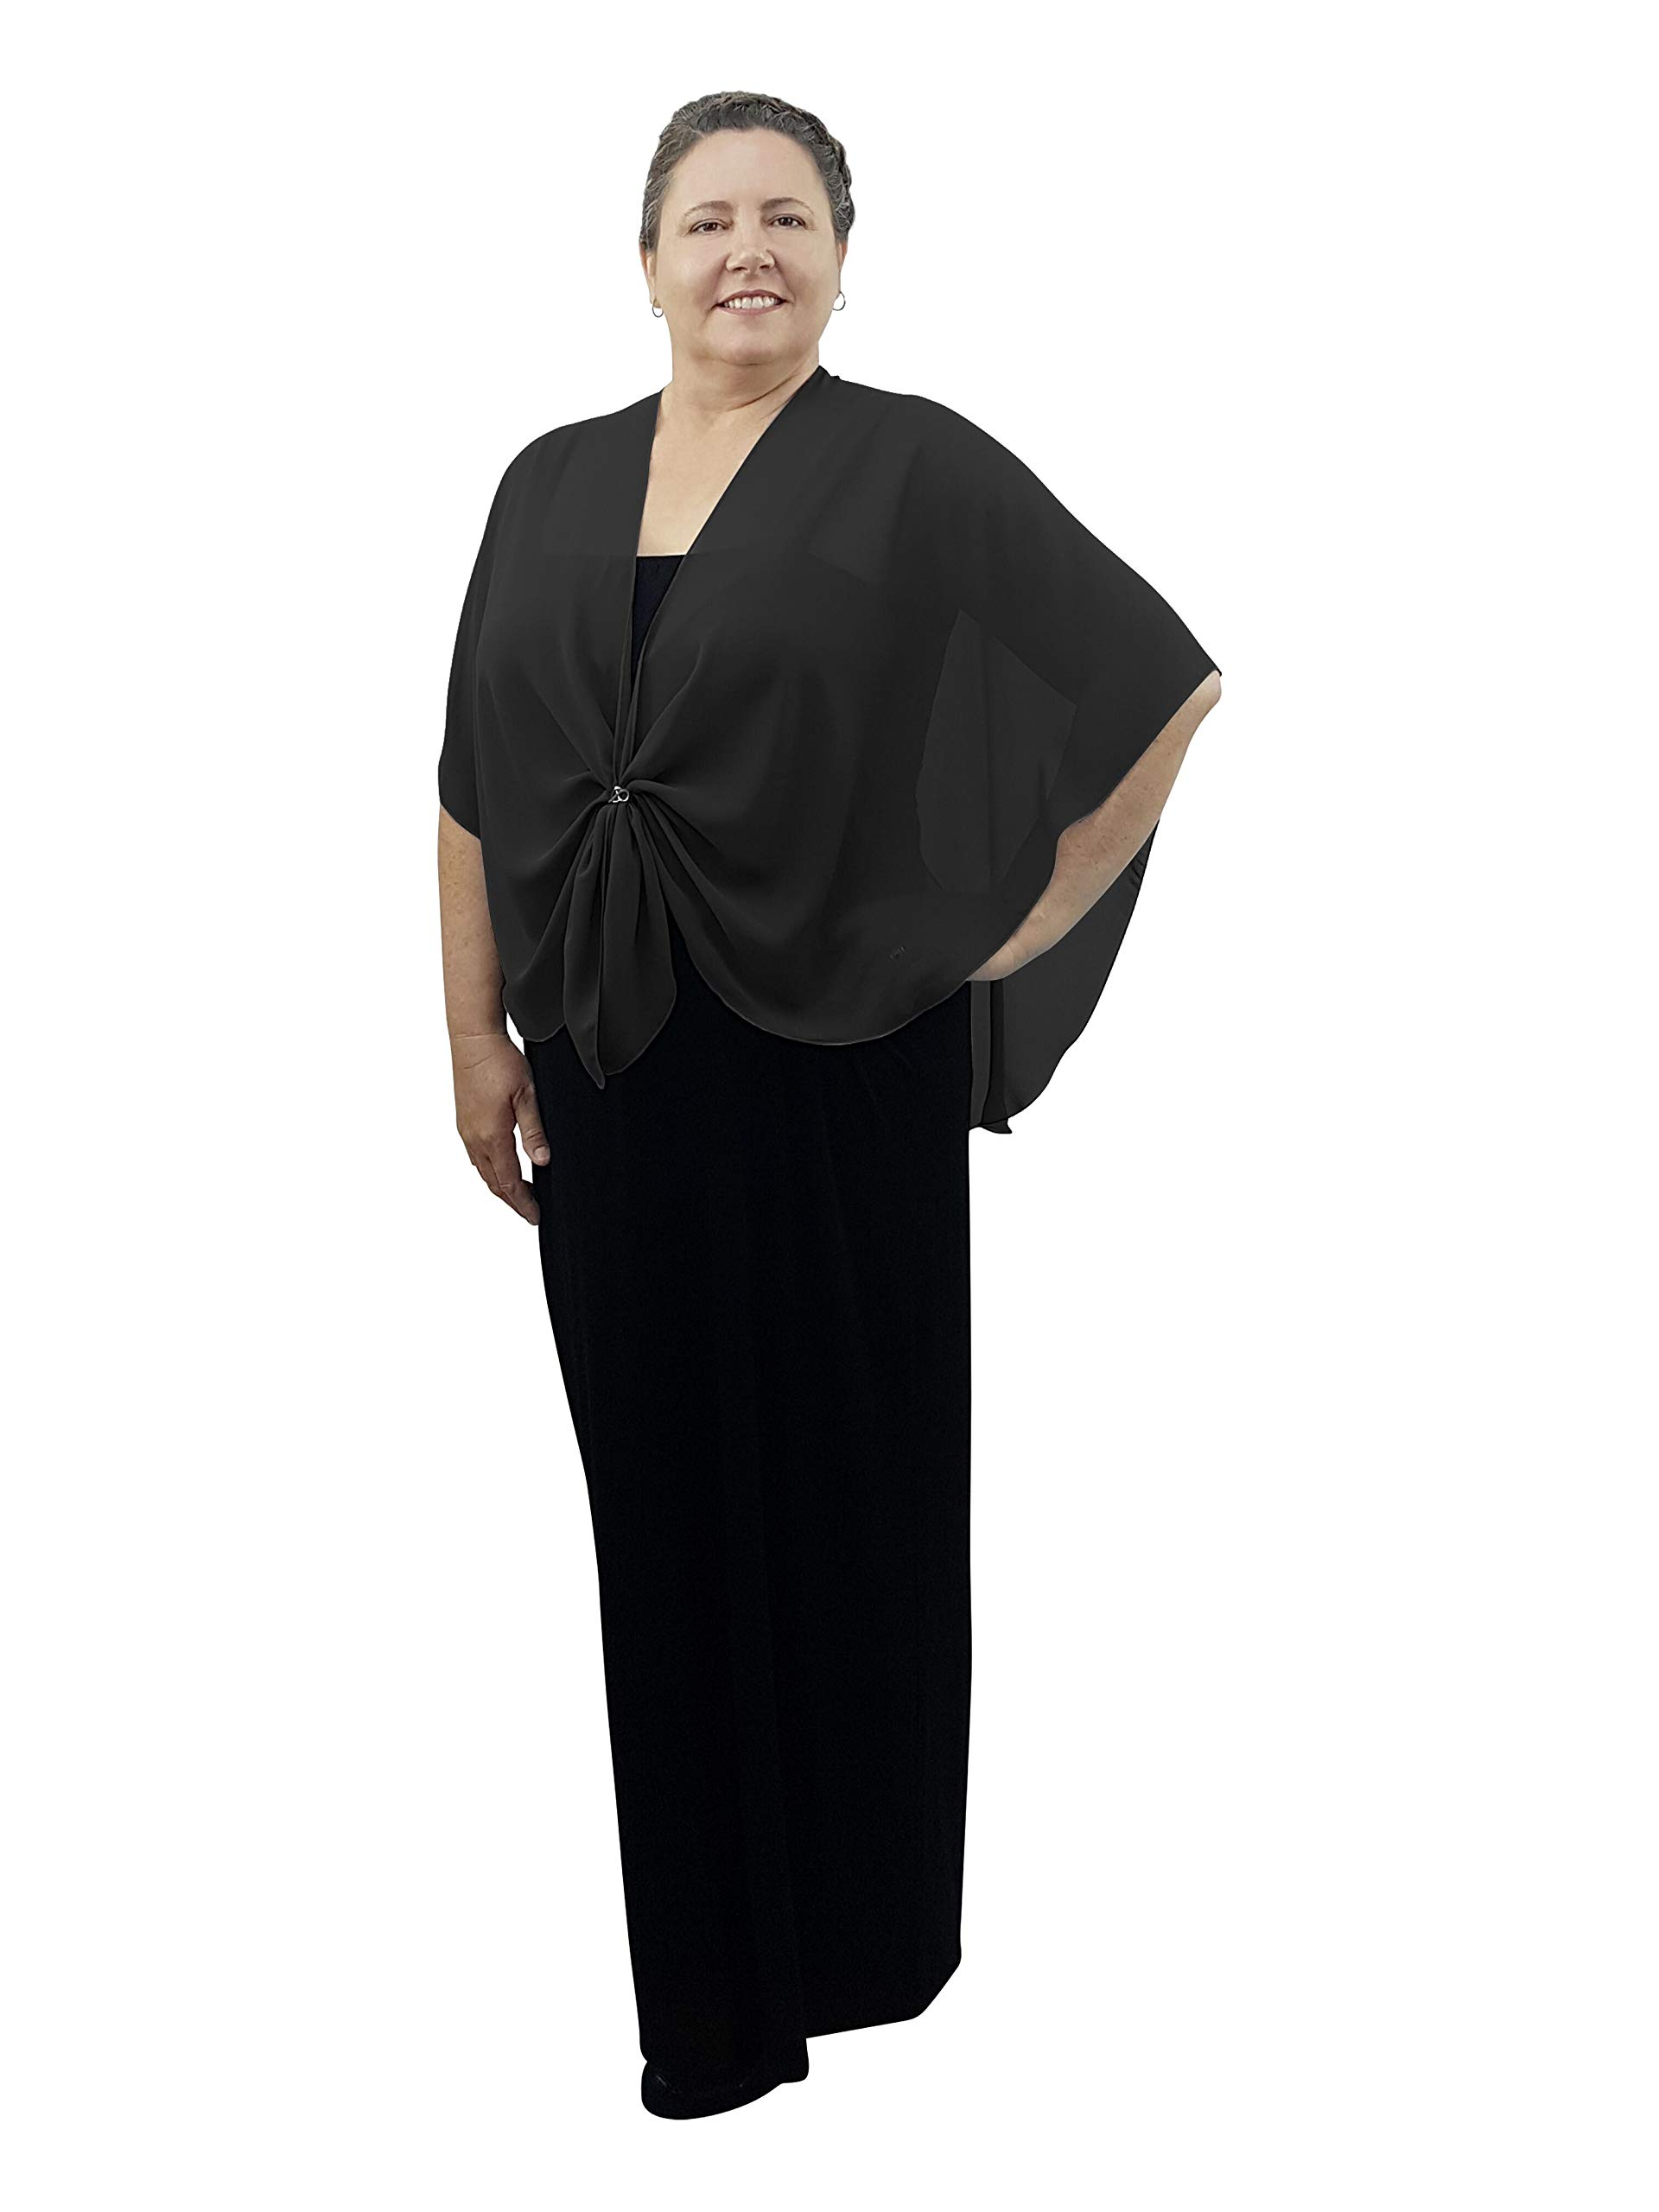 eXcaped Women's Evening Shawl Wrap Sheer Chiffon Open Front Cape and Silver Scarf Ring (Black) by eXcaped (Image #3)